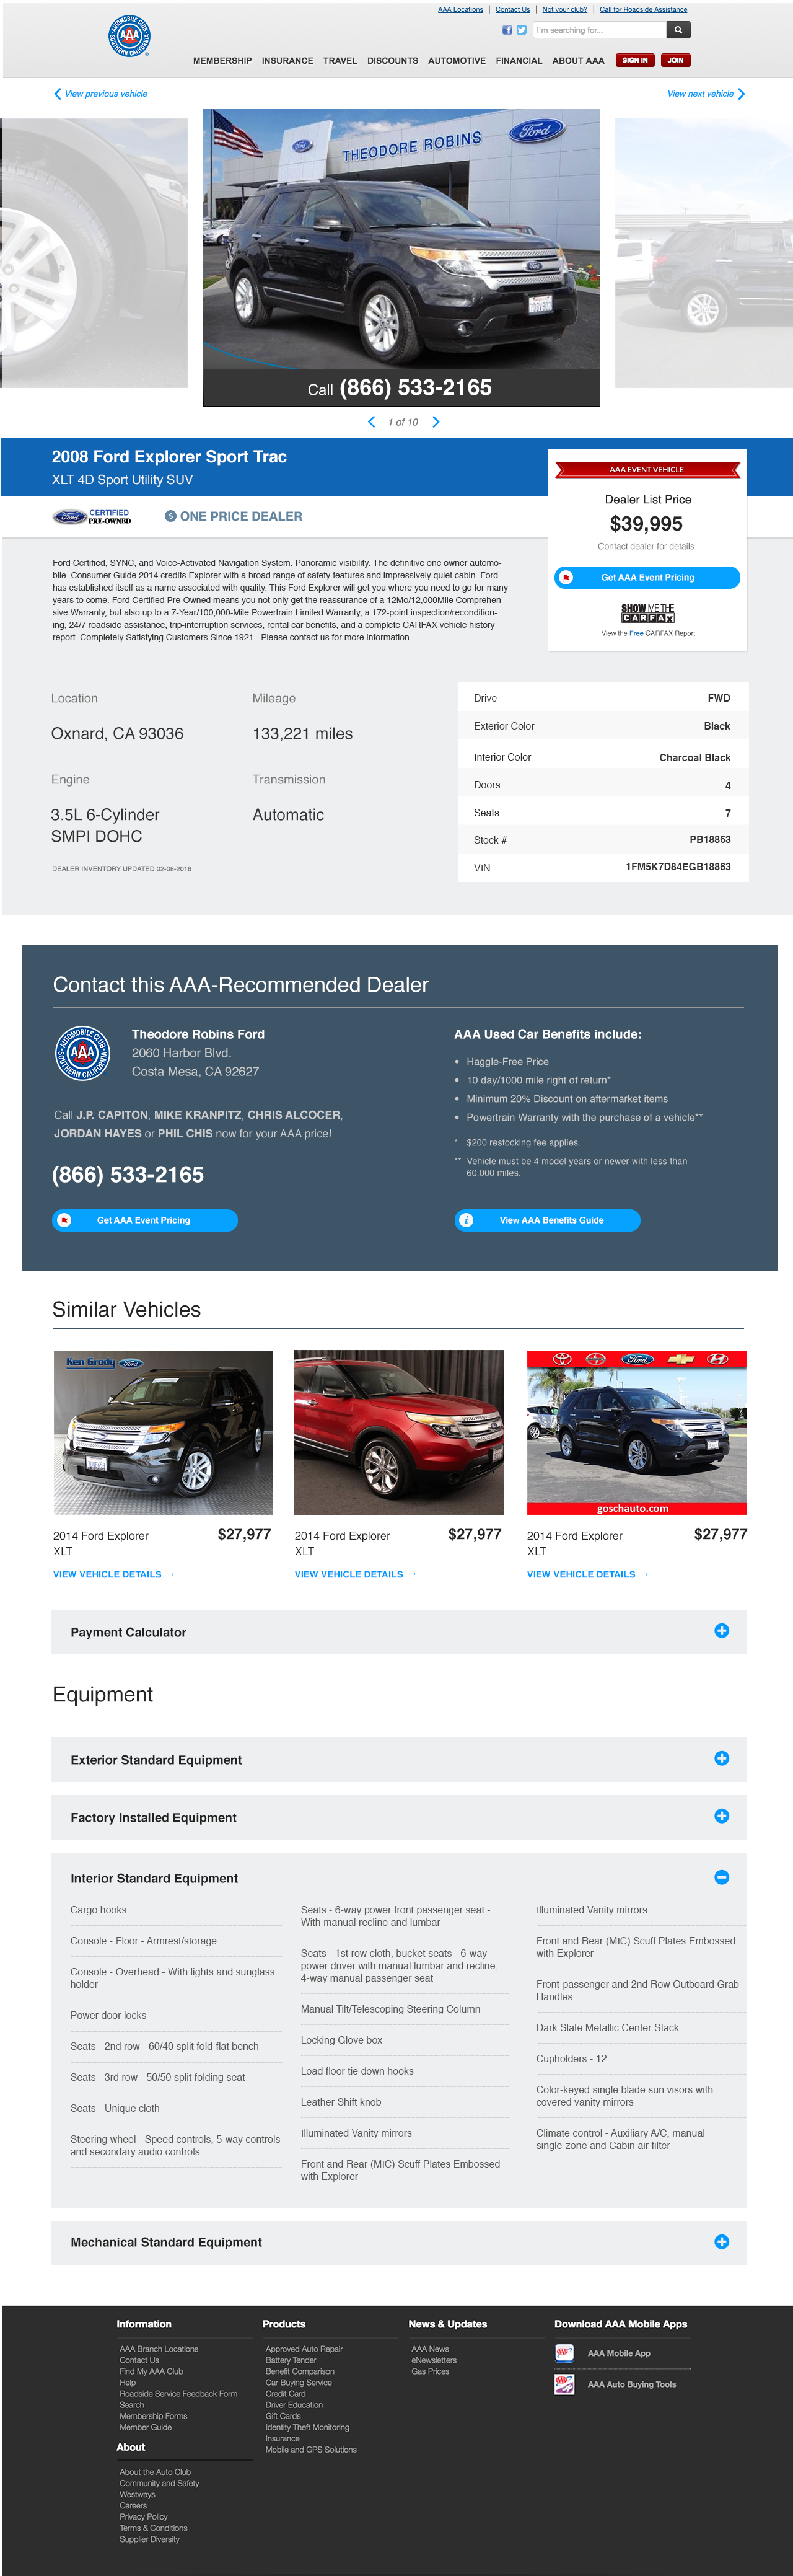 AAA Vehicle details page - desktop